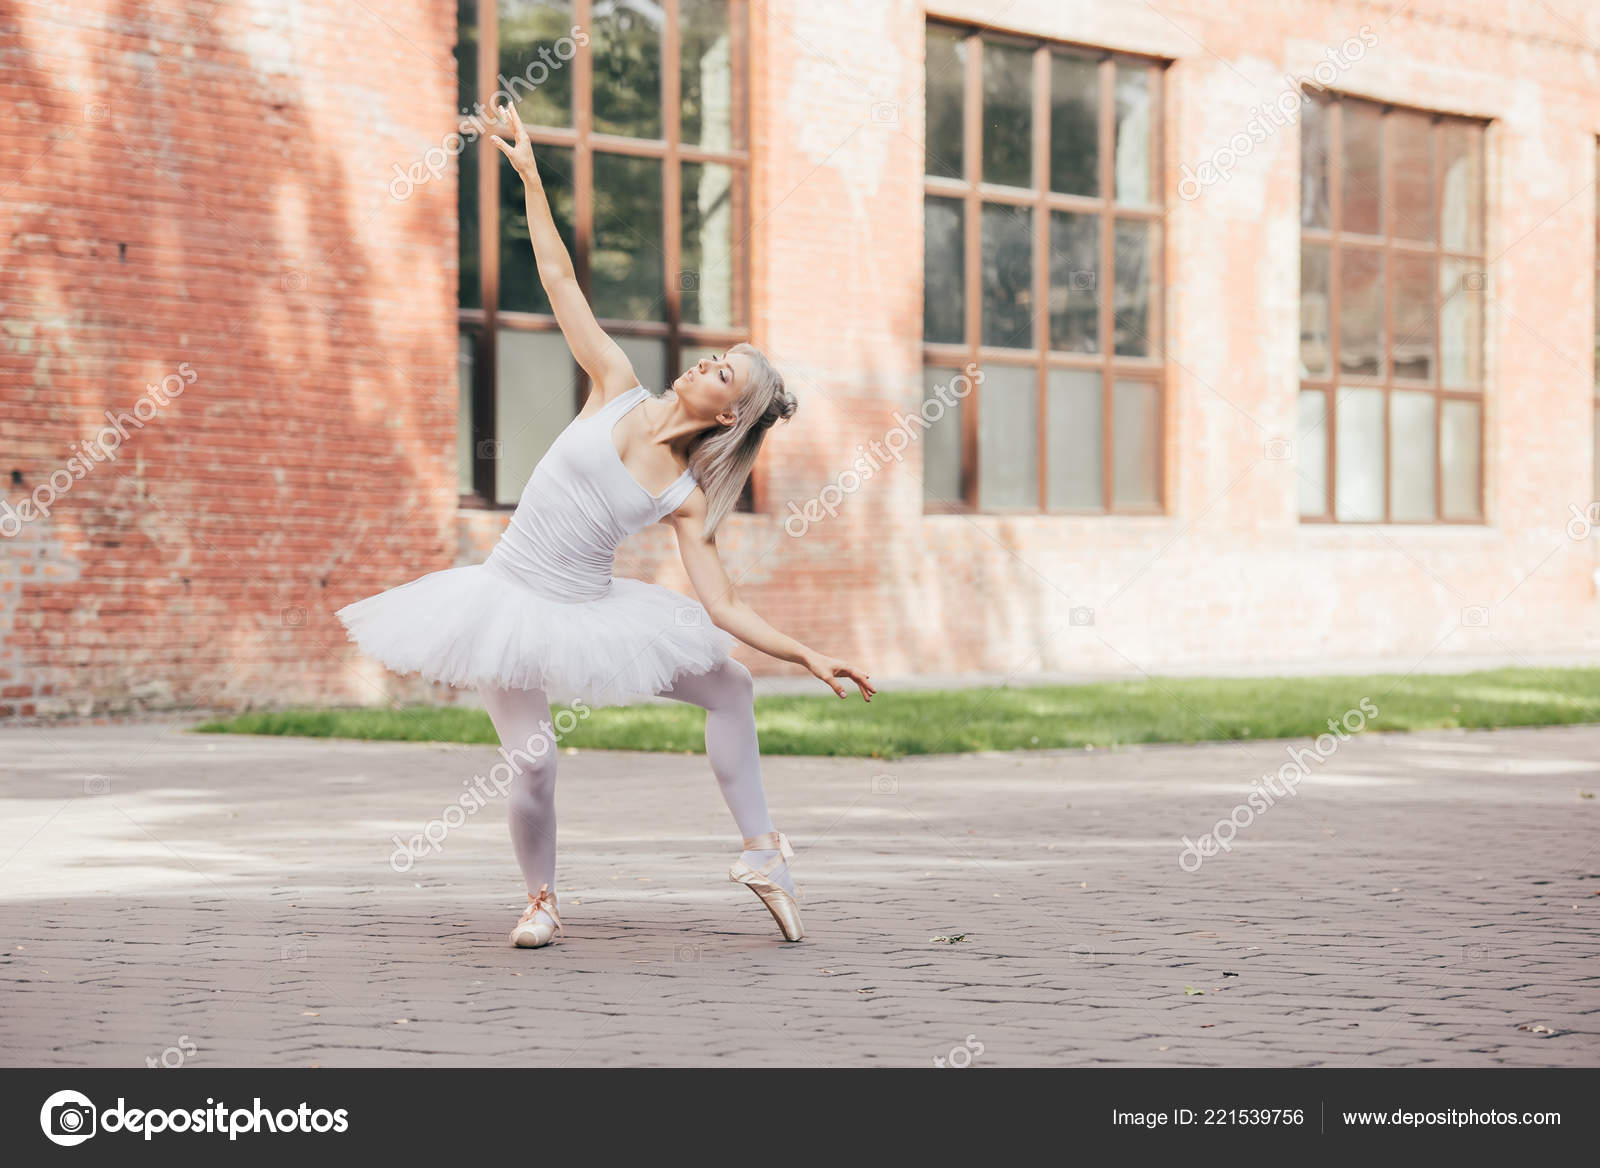 Attractive Young Ballerina Pointe Shoes Dancing Urban Street Stock Photo C Allaserebrina 221539756